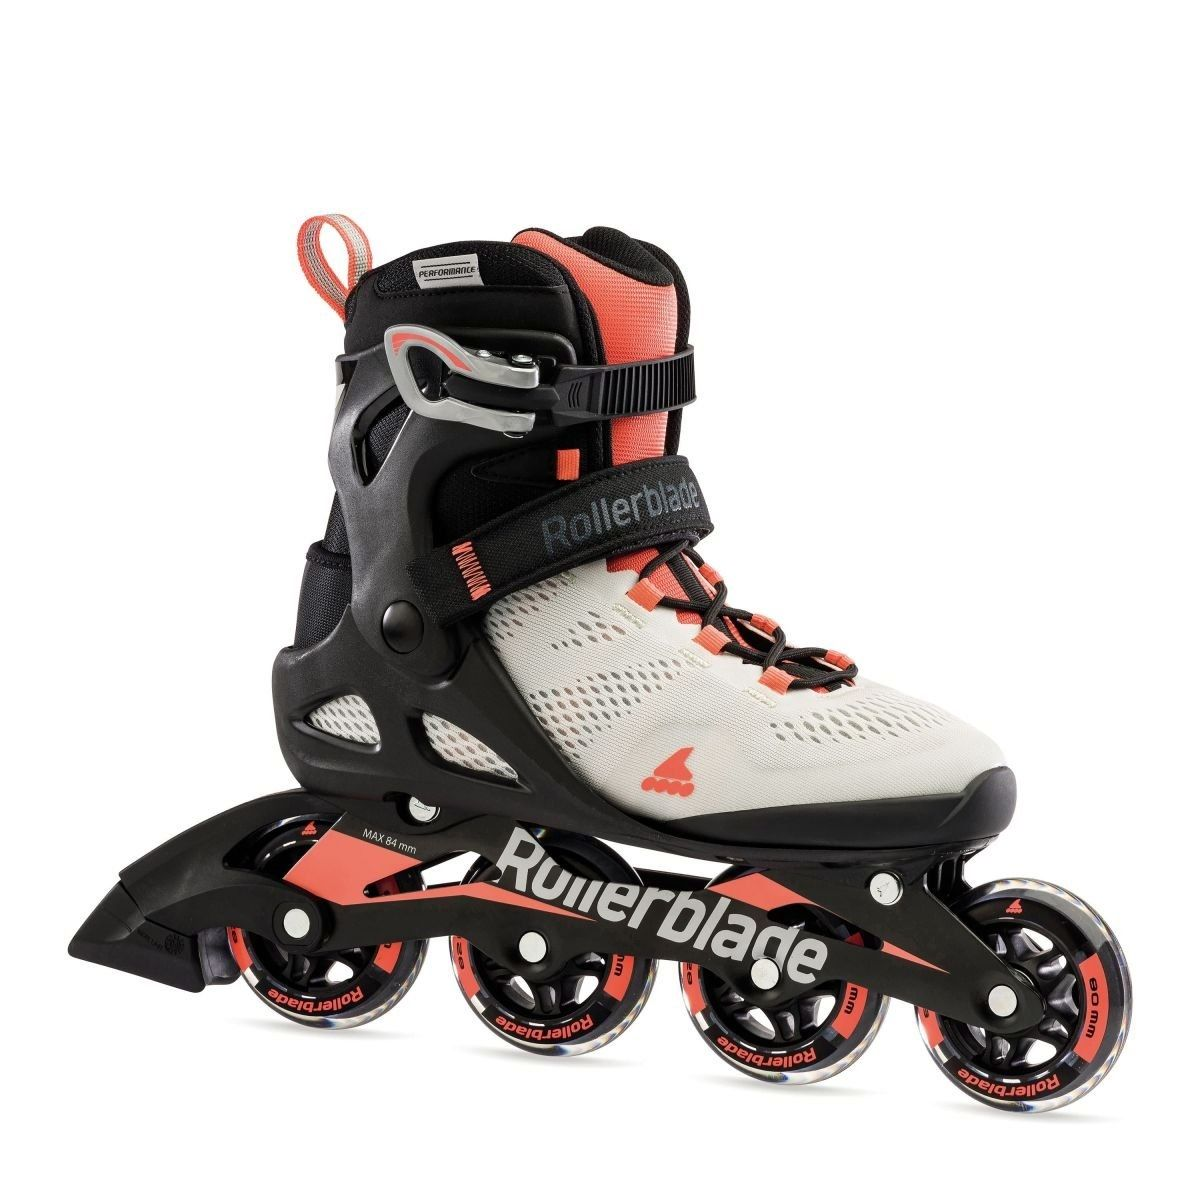 Rollerblade Macroblade 80 W 36